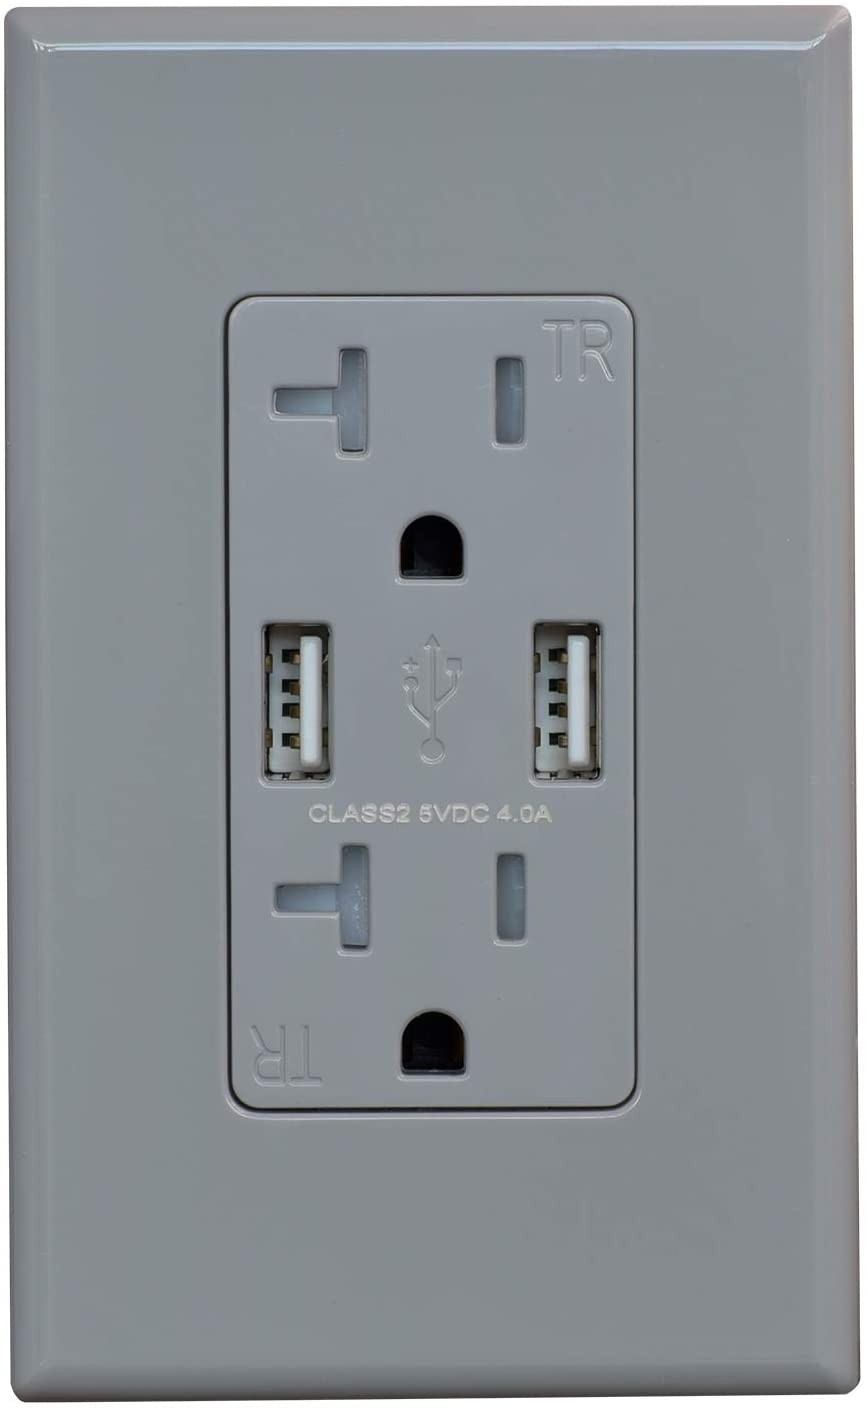 (1 Pack, Glossy Gray) ELEGRP USB Outlet Wall Charger, Dual High Speed 4.0 Amp USB Ports with Smart Chip, 20 Amp Duplex Tamper Resistant Receptacle Plug NEMA 5-20R, Wall Plate Included, UL Listed